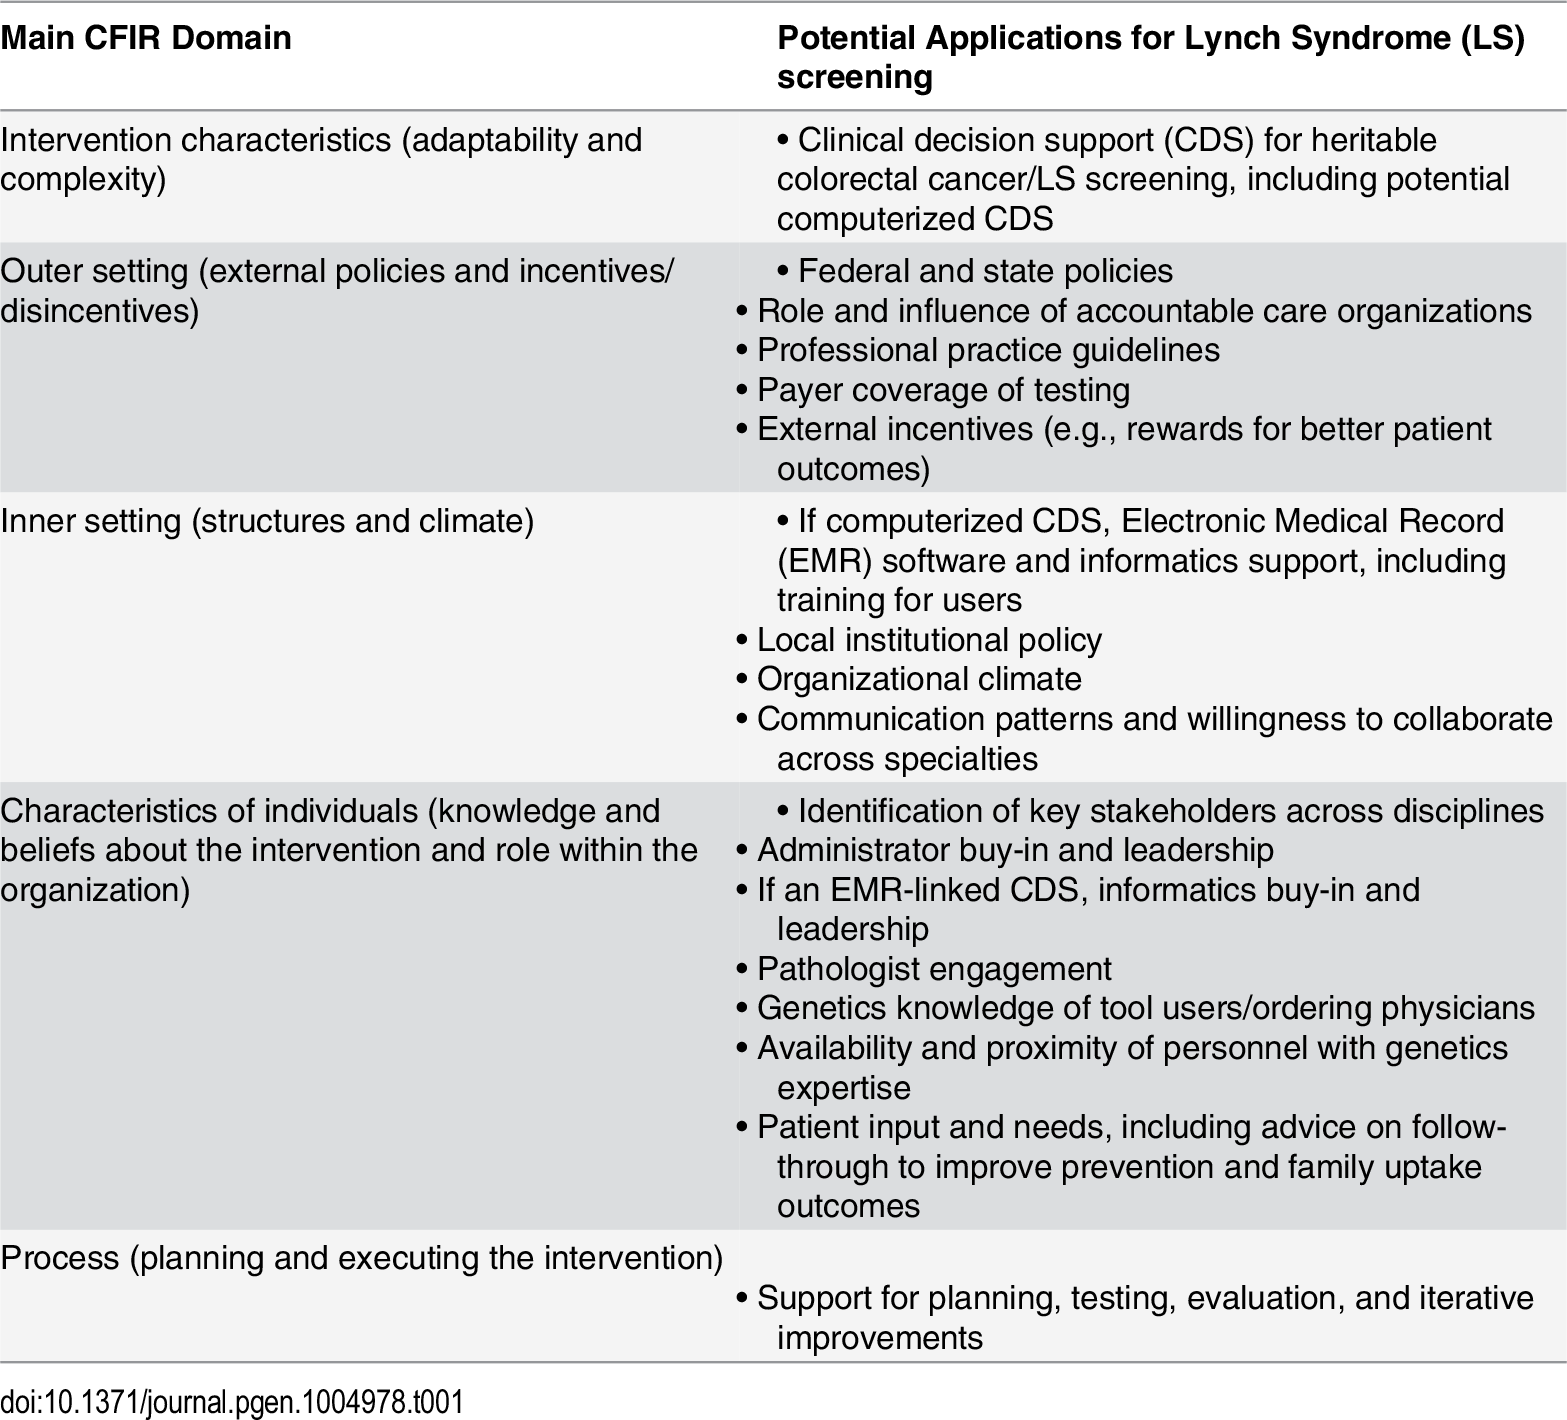 Consolidated Framework for Implementation Research (CFIR) domains and Lynch Syndrome screening implementation.